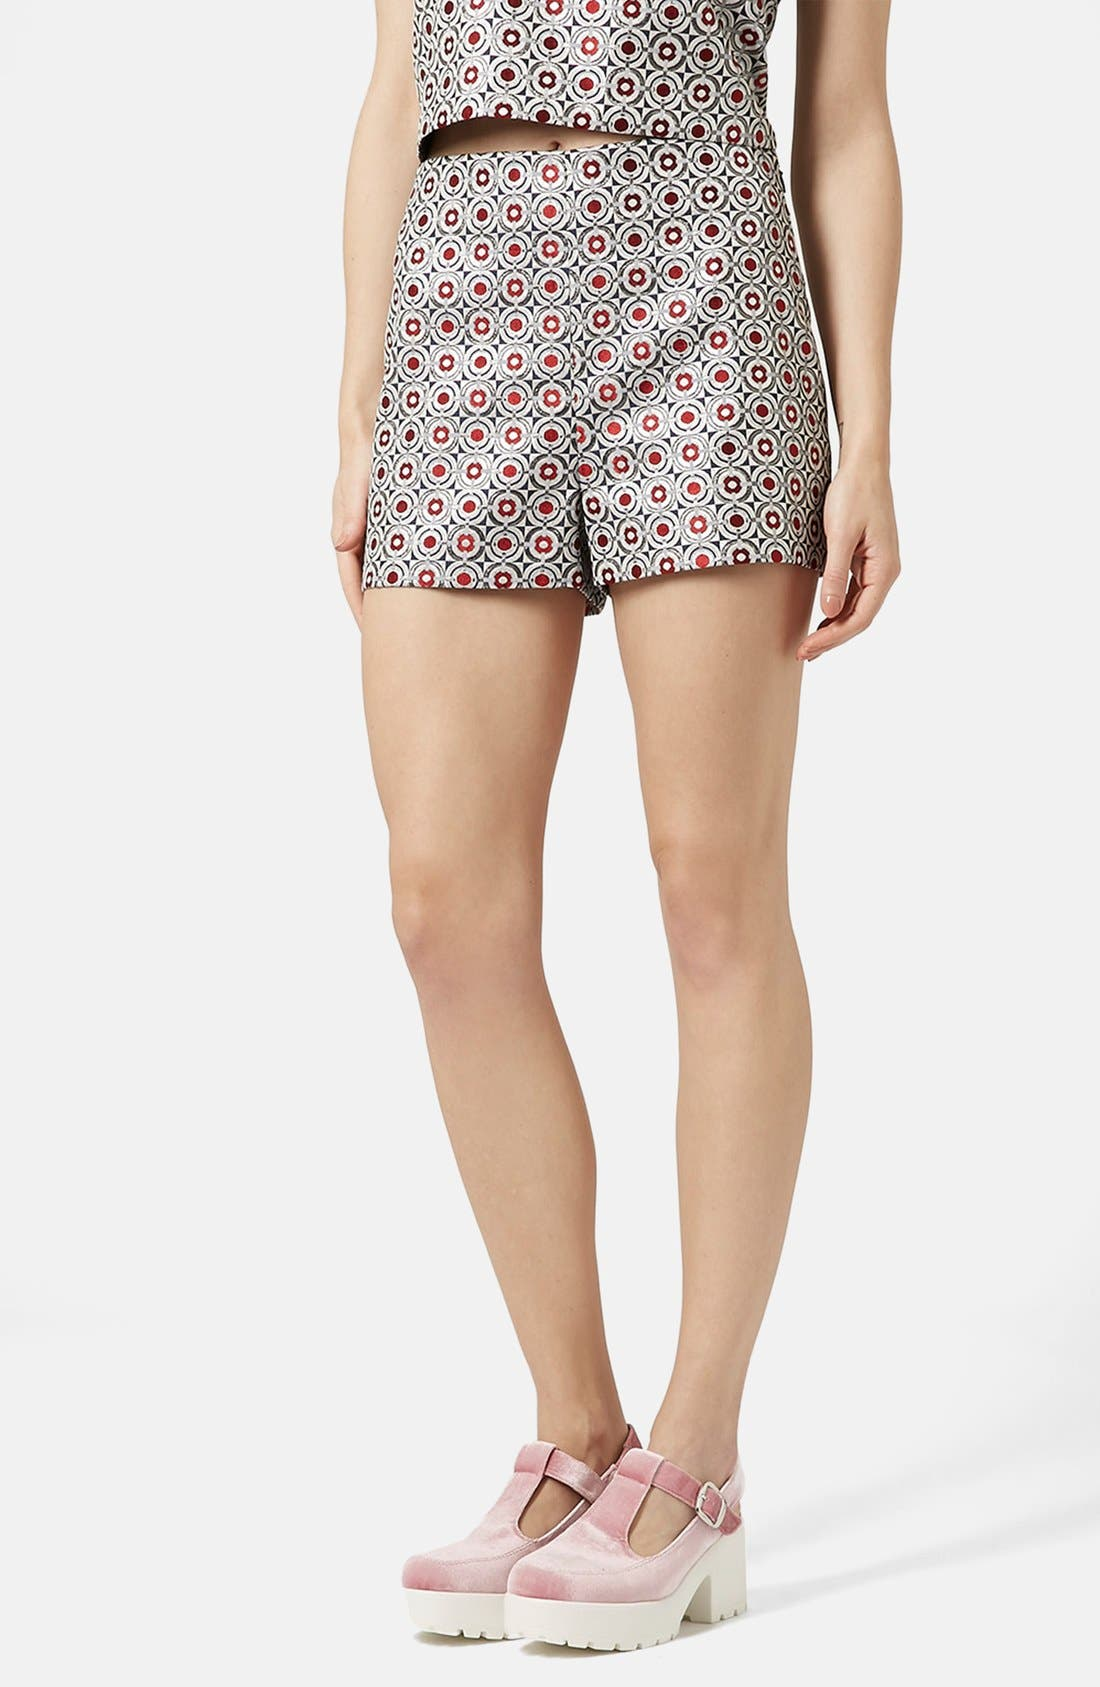 Alternate Image 1 Selected - Topshop Metallic Geo Jacquard High Waist Shorts (Brit Pop-In) (Nordstrom Exclusive)